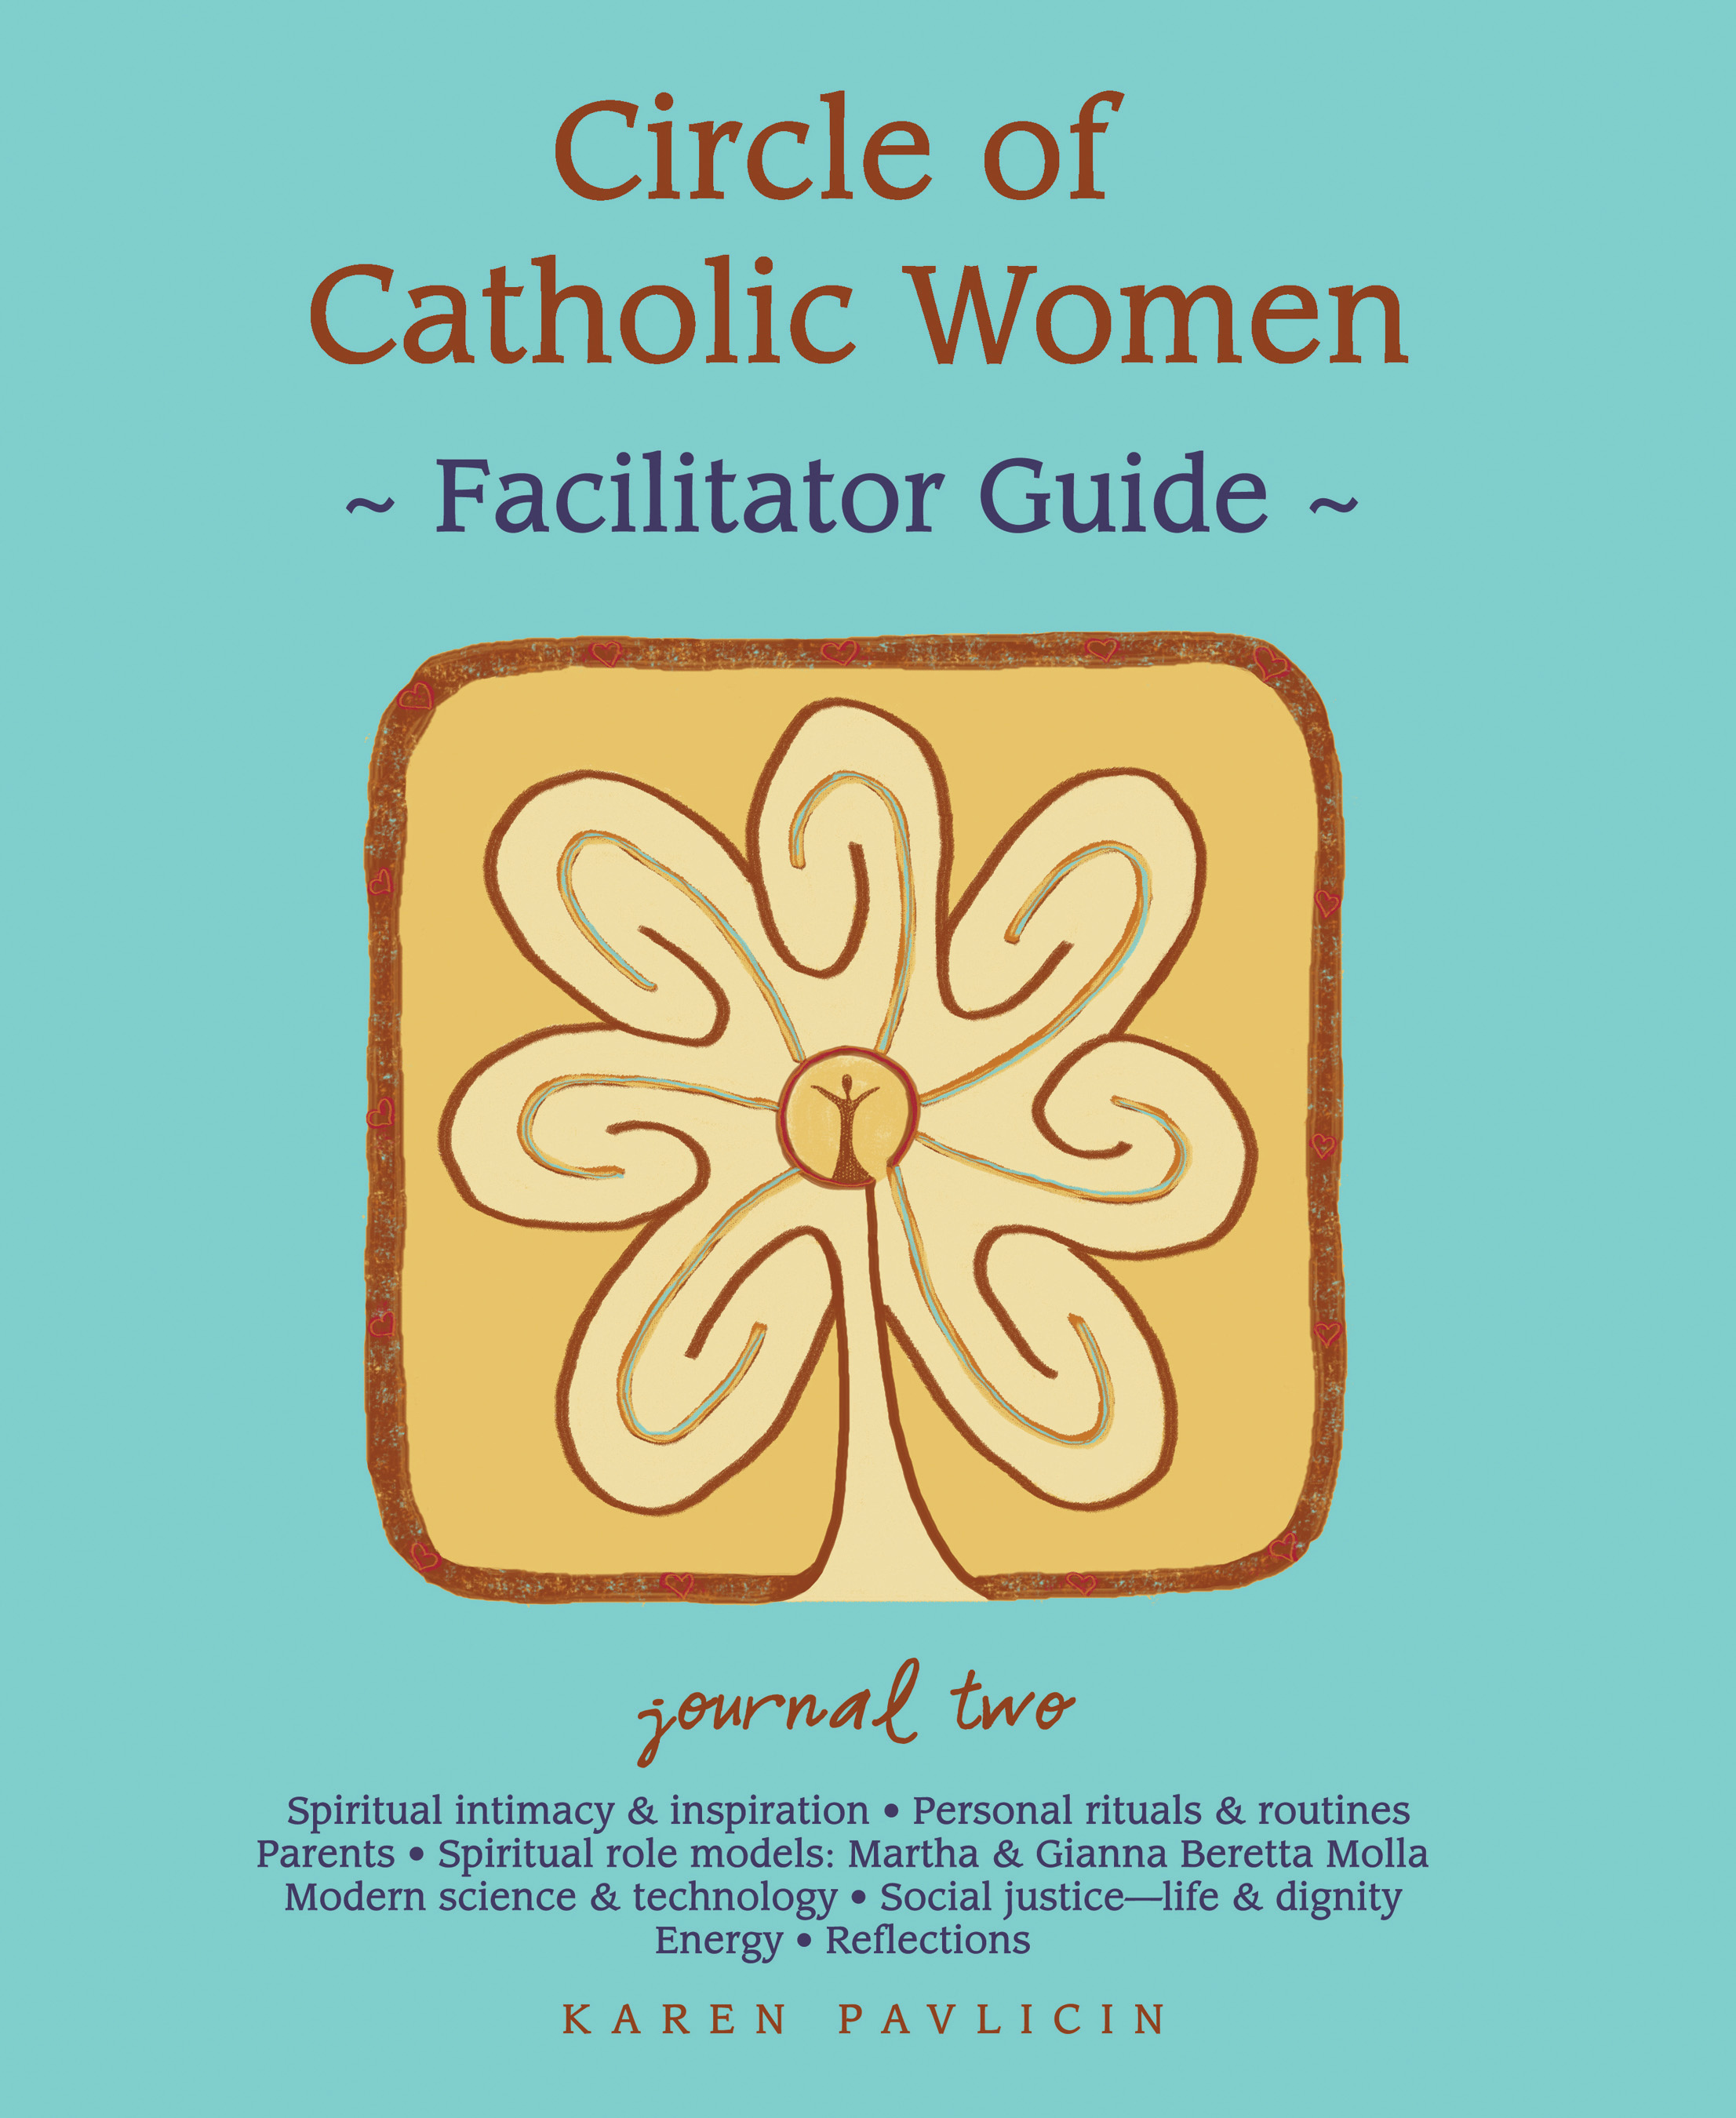 Circle of Catholic Women Journal Two Facilitator Guide by Karen Pavlicin